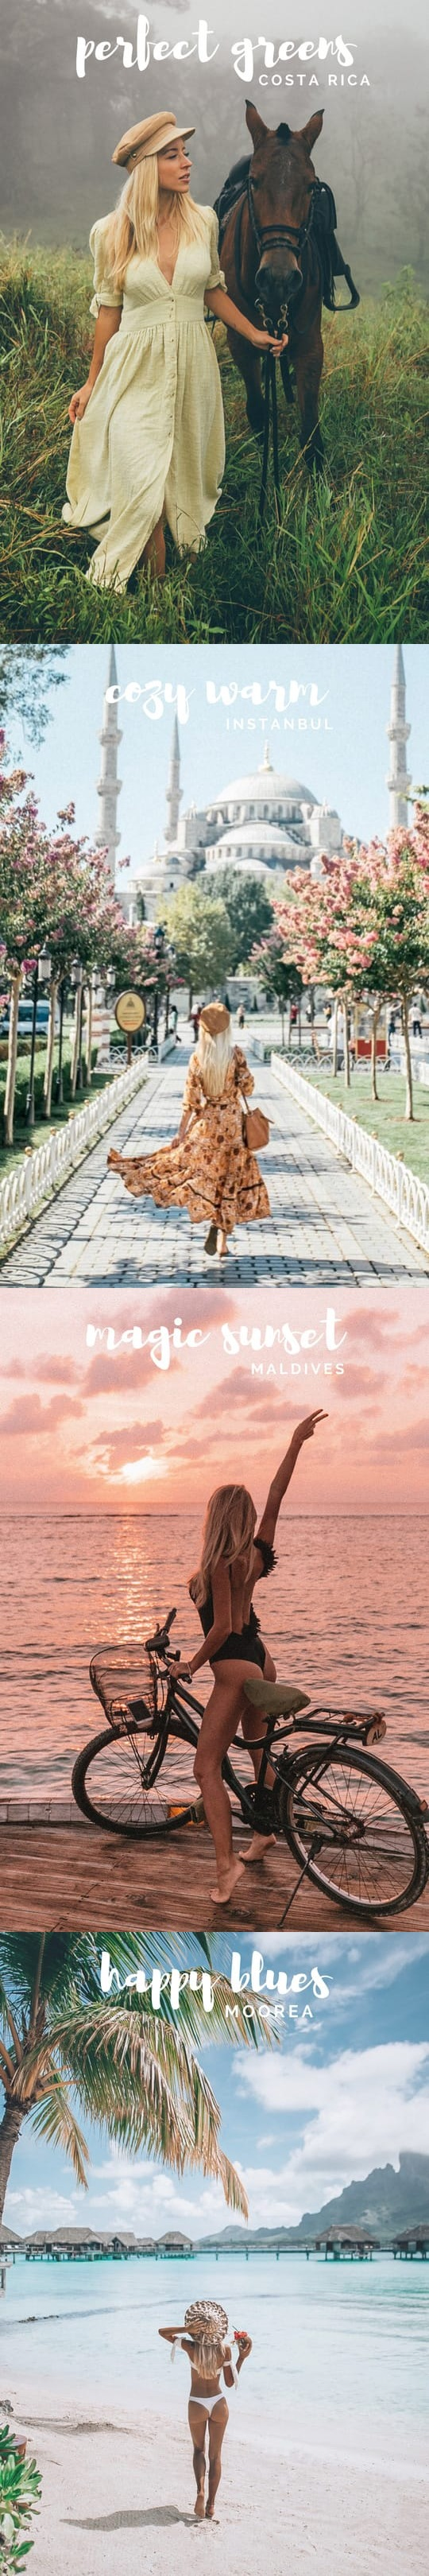 Travel In Her Shoes Cozy Warm LR Presets | Fonts, Graphics